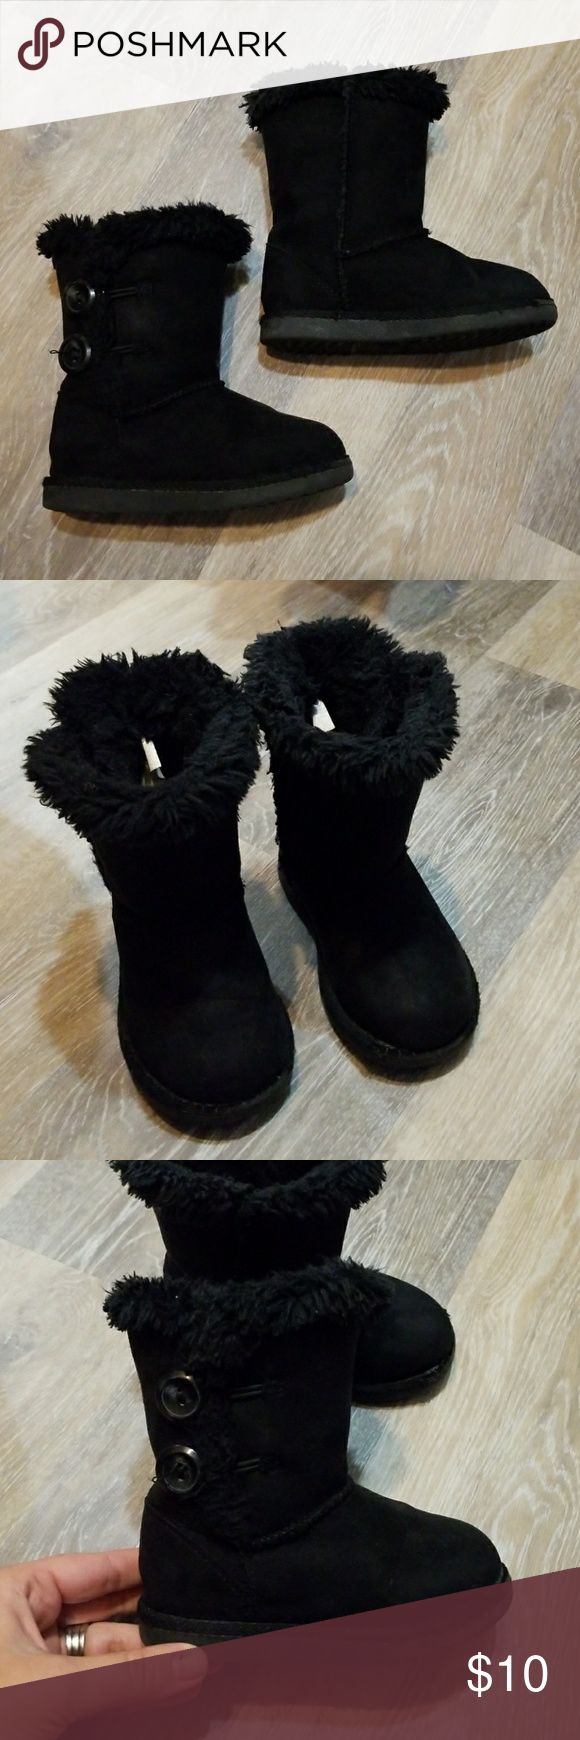 Girls fur lined boots Cute black fur lined boots with button detail on the sides. Toddler size 7. The buttons are functional but my daughter always just slipped them on and off. Have some wear on the toe of the soles, as pictured, price reflecting. But still have life. Great, thick sole and warm! Shoes Boots